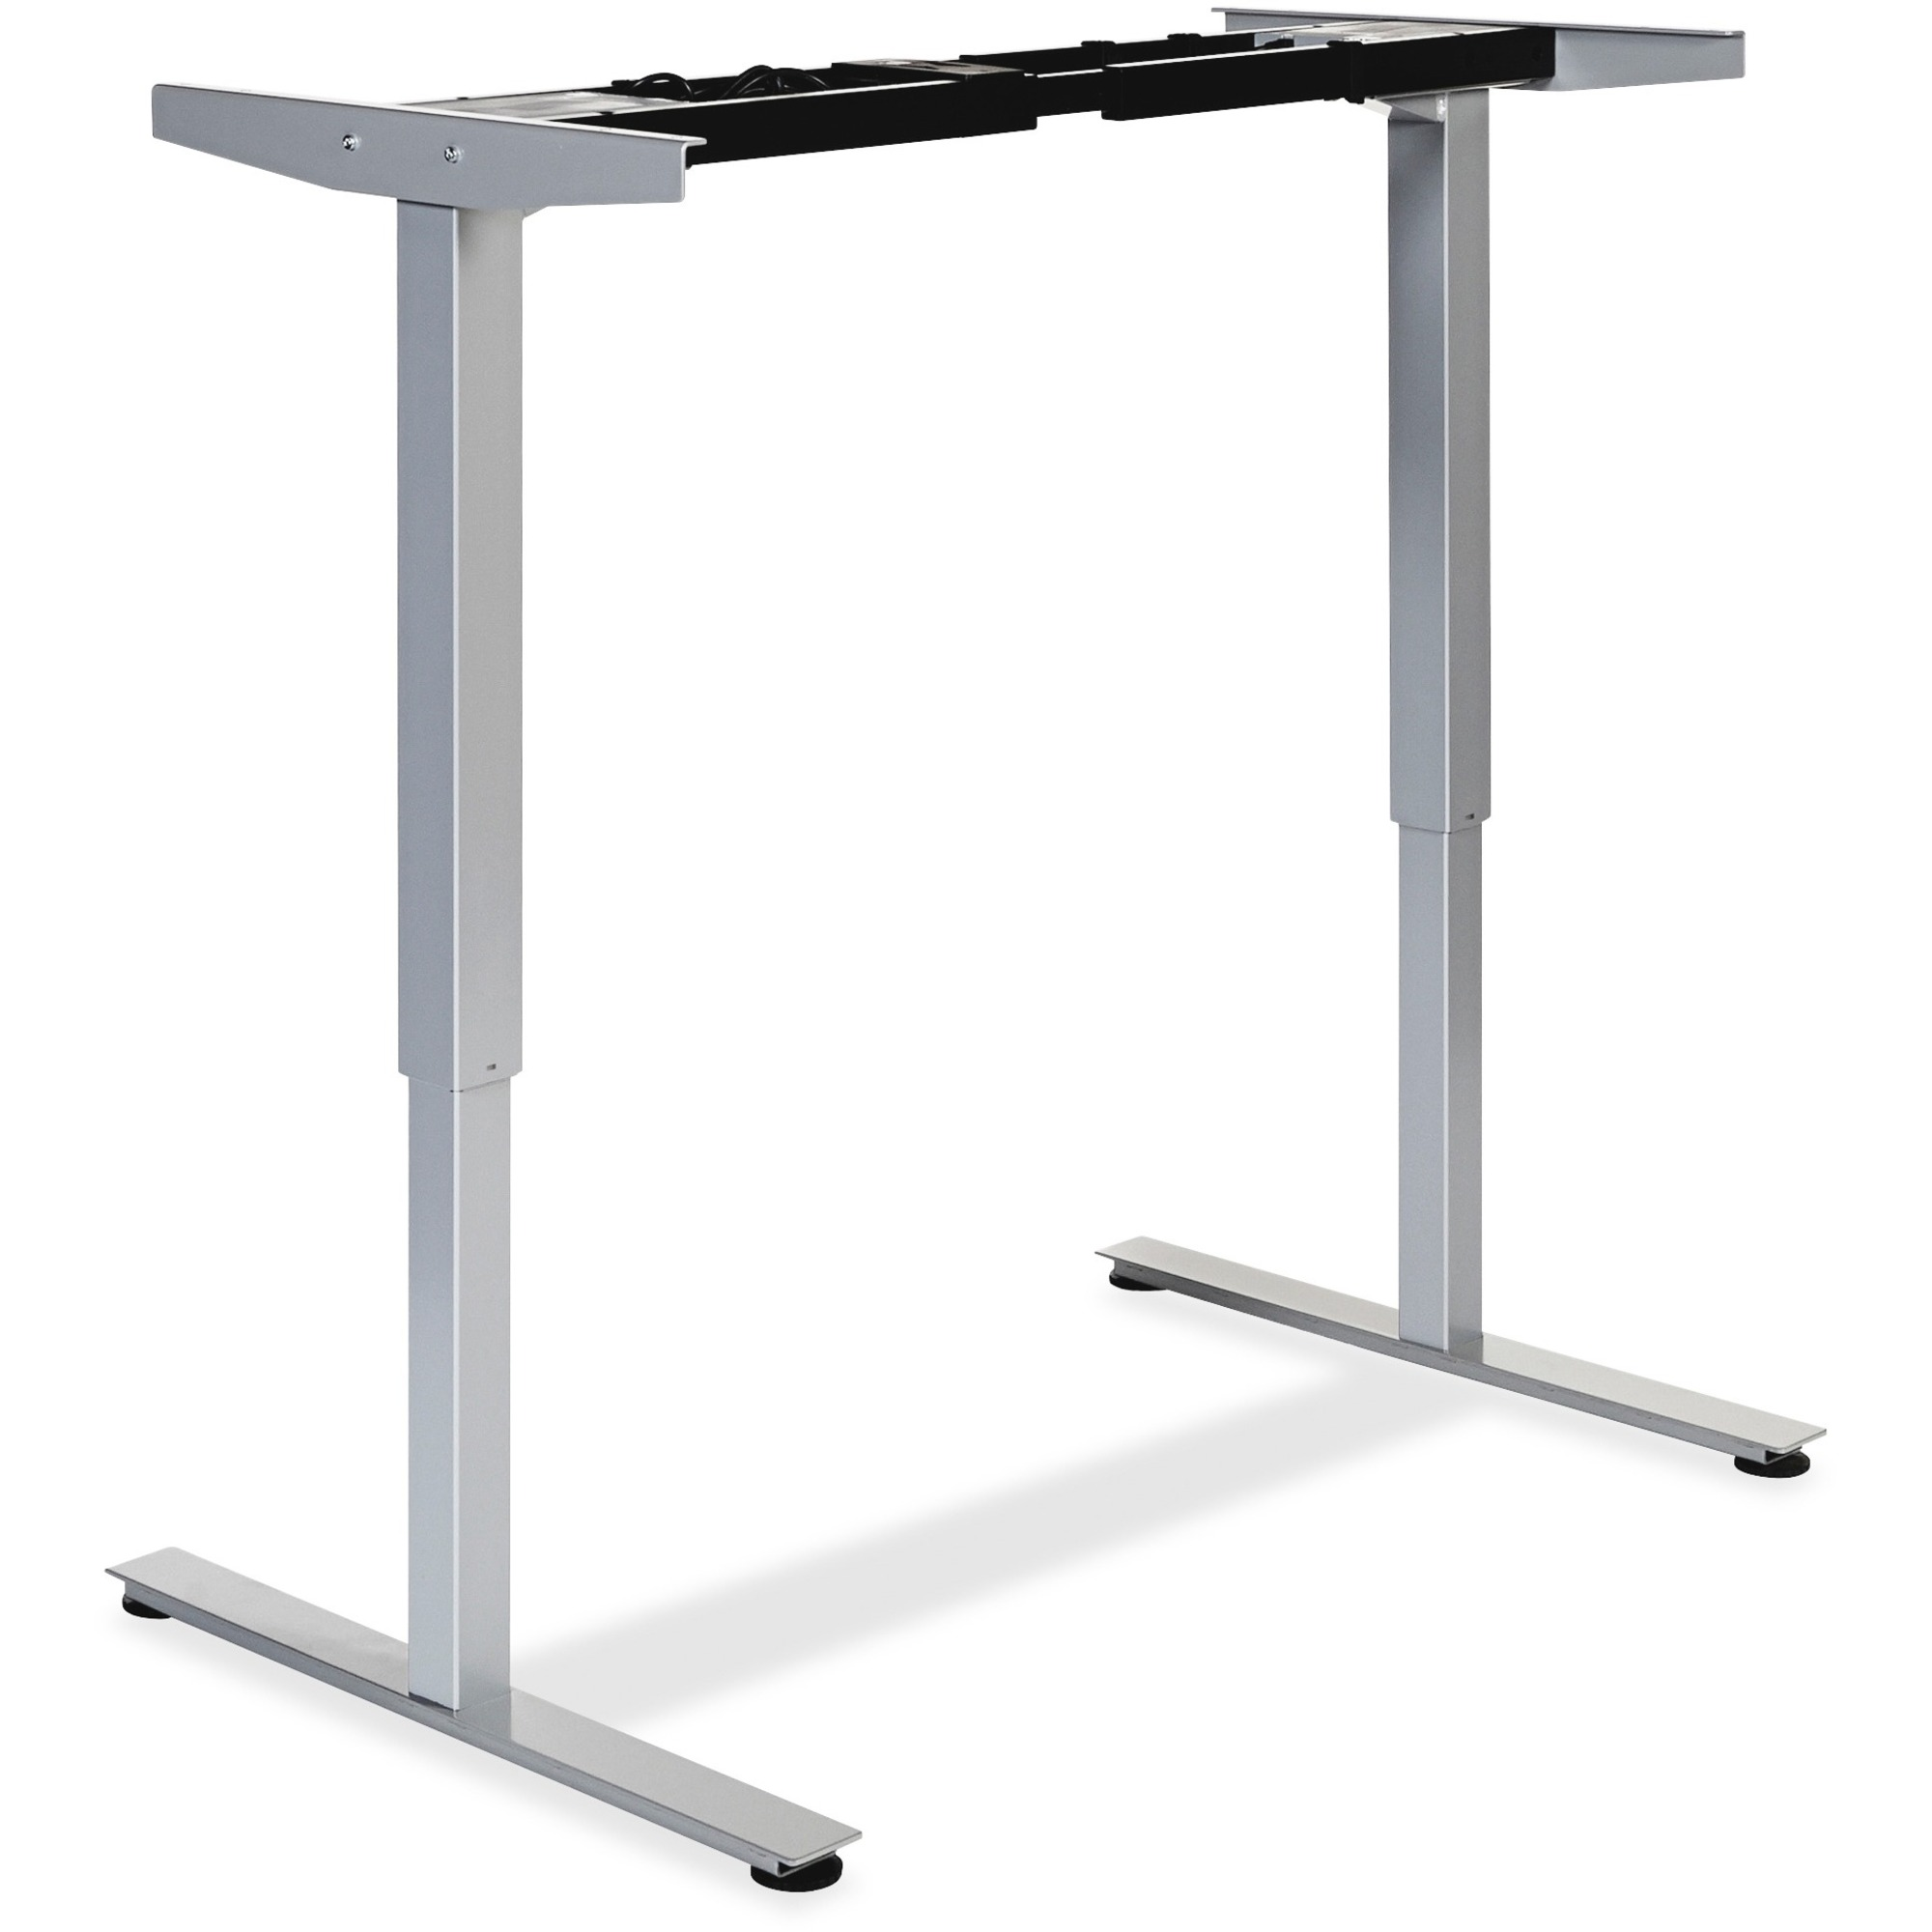 Wondrous Llr 25995 Lorell Electric Height Adjustable Sit Stand Desk Download Free Architecture Designs Embacsunscenecom